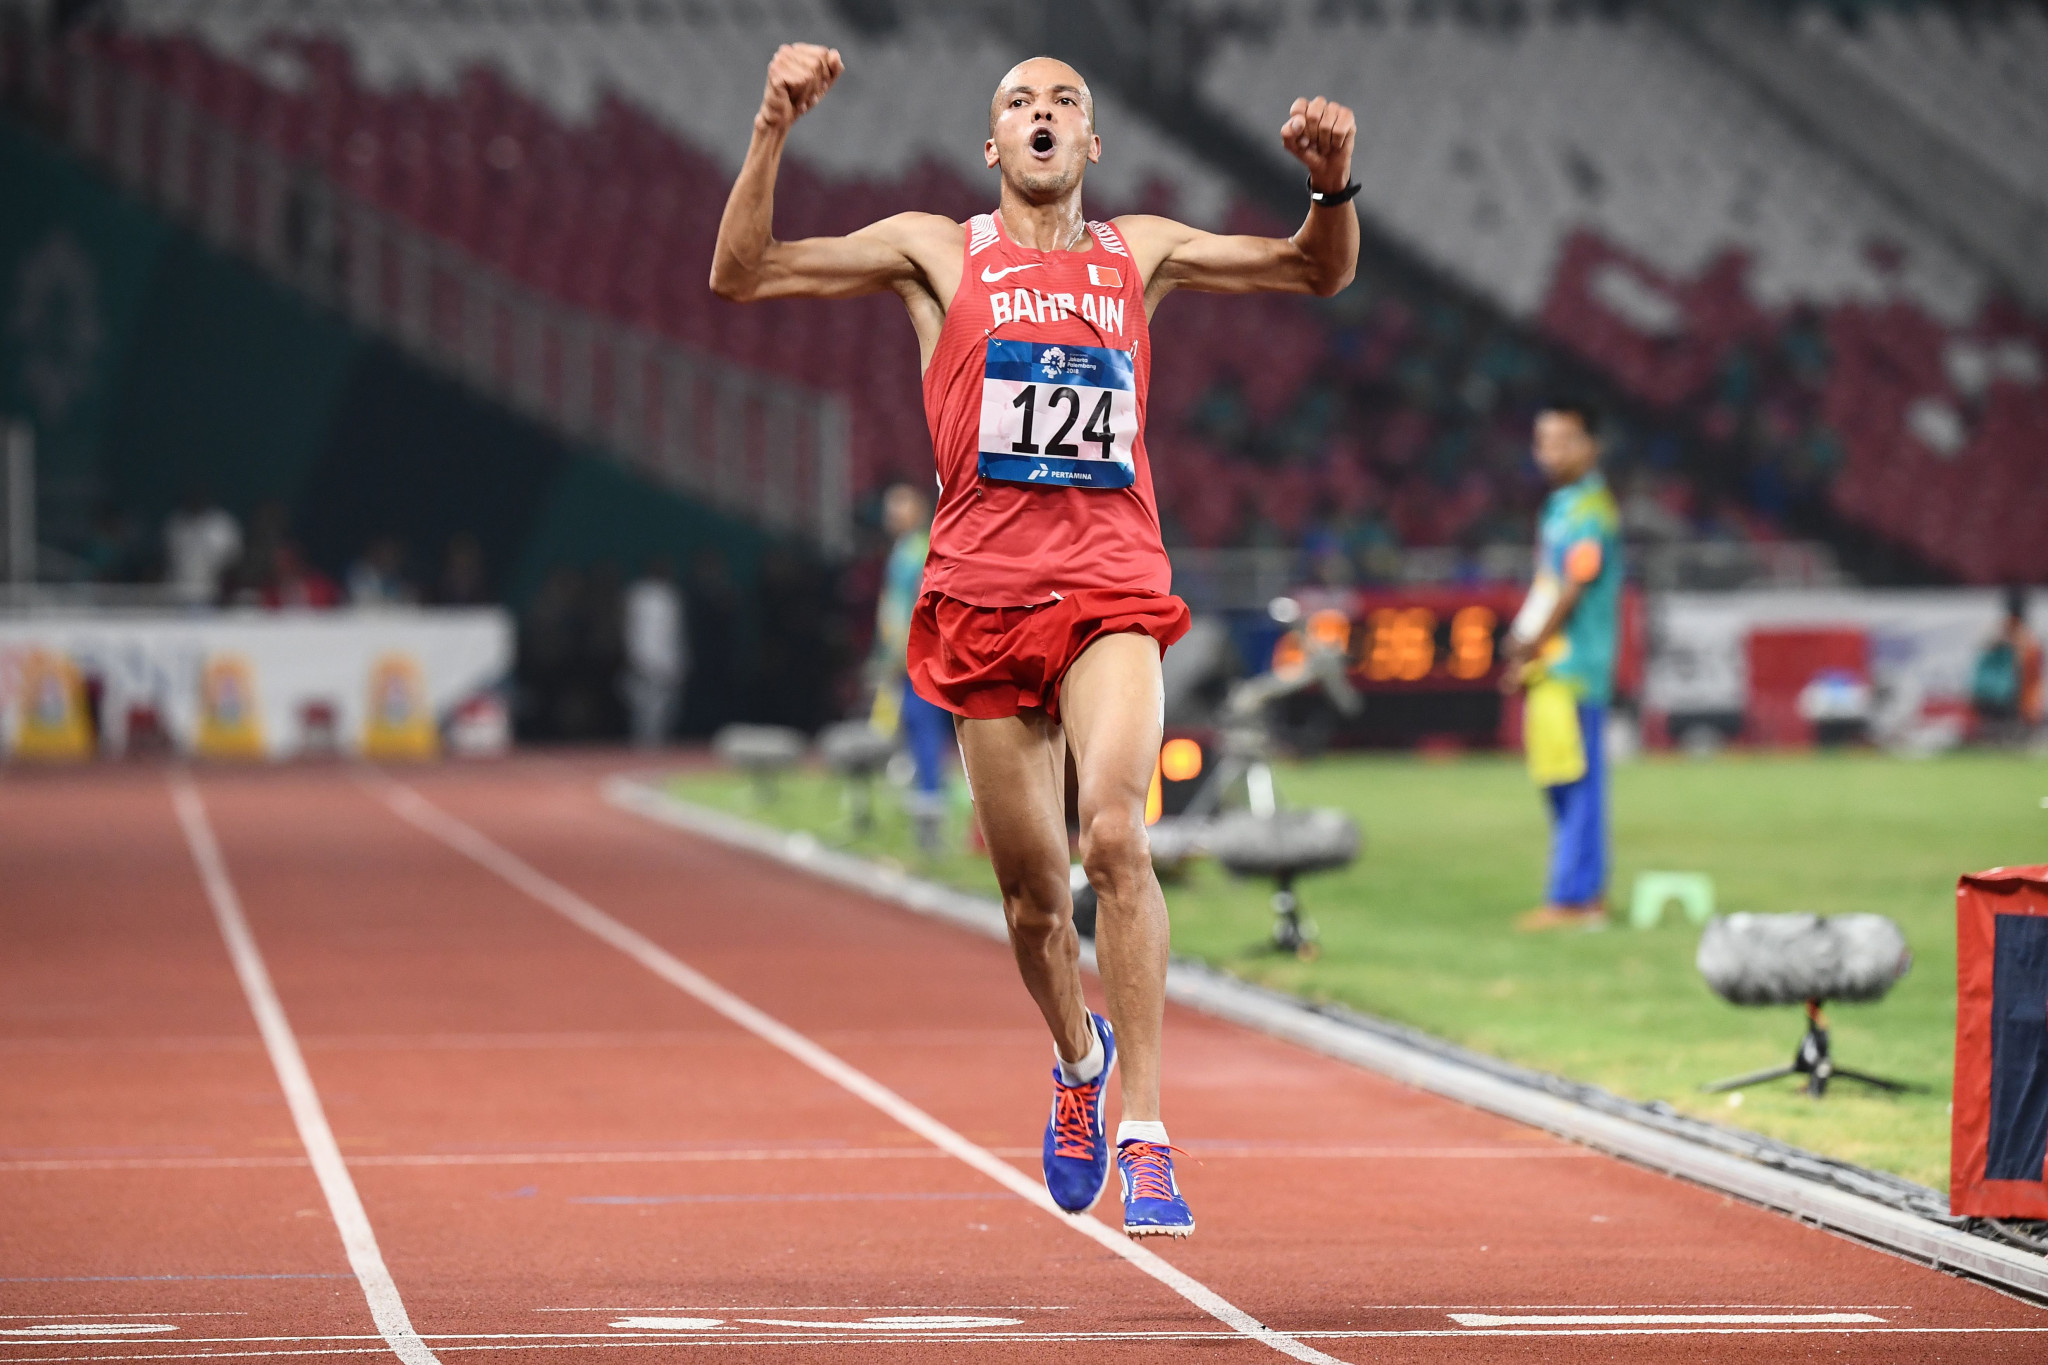 Bahrain's Hassan Chani won the 10,000m at Jakarta 2018 by nearly 25 seconds but will now lose his medal after being banned by the Athletics Integrity Unit ©Getty Images